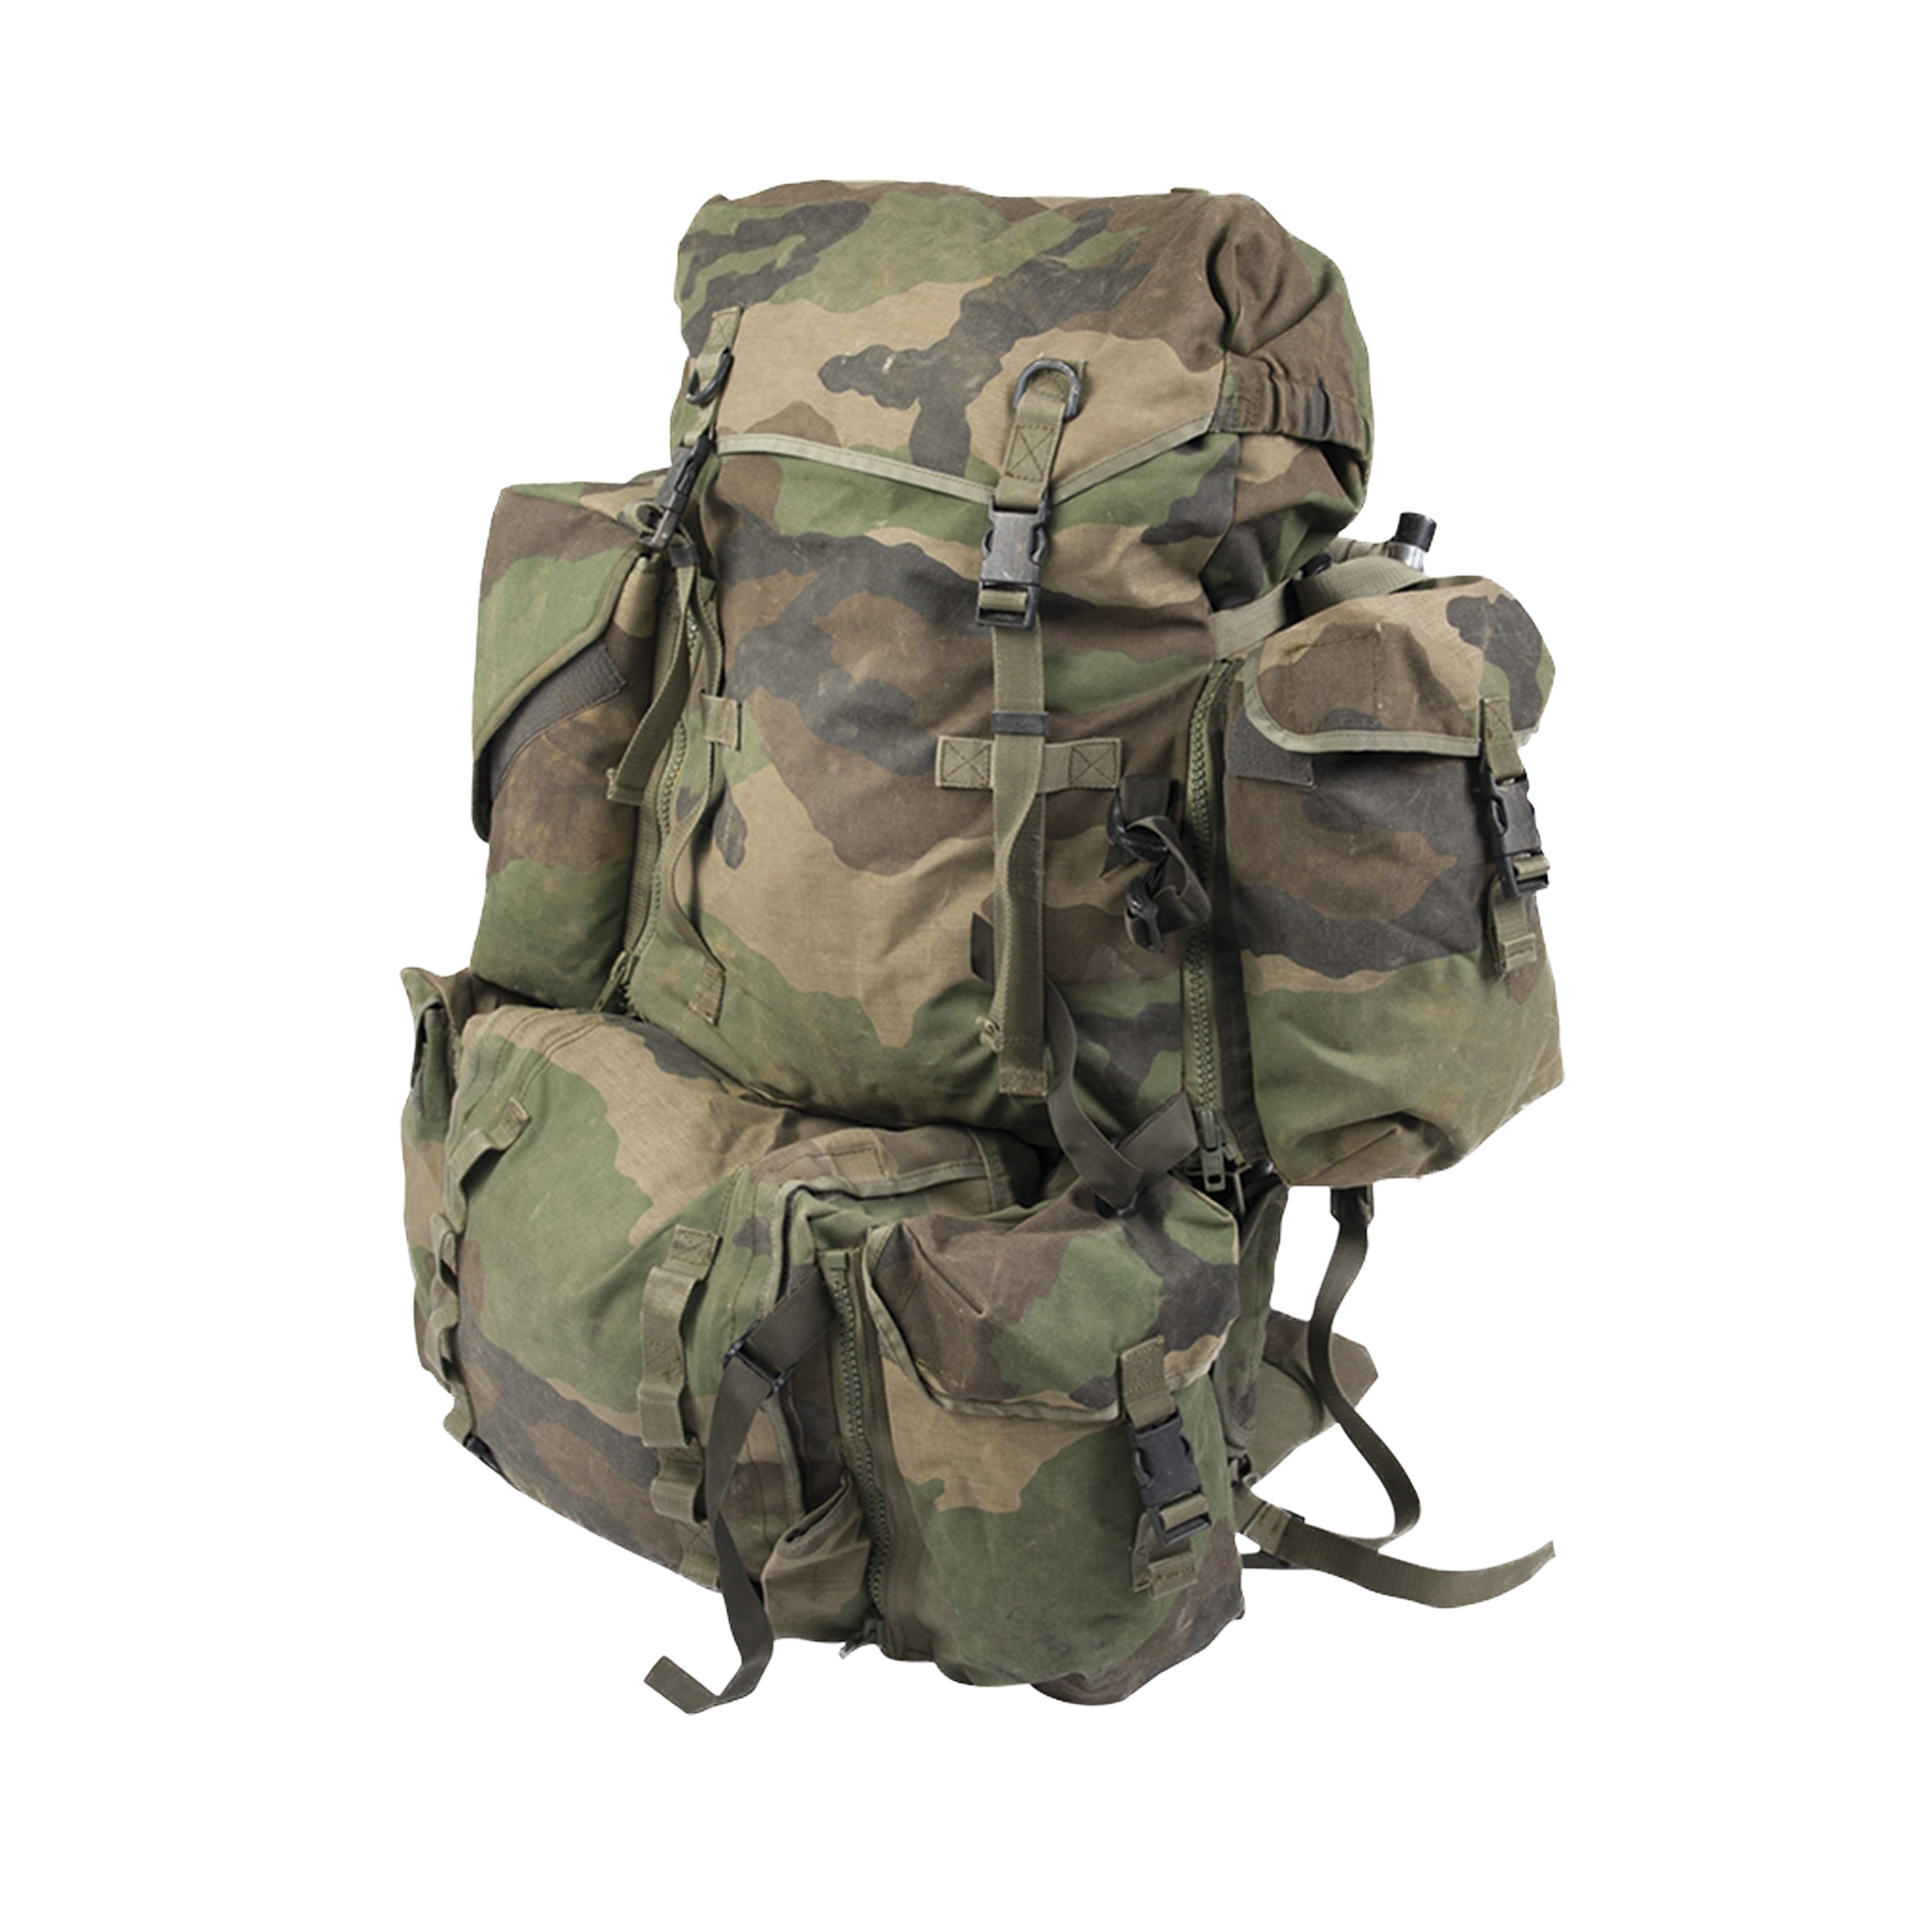 French Backpack with Carrier System Camo Used